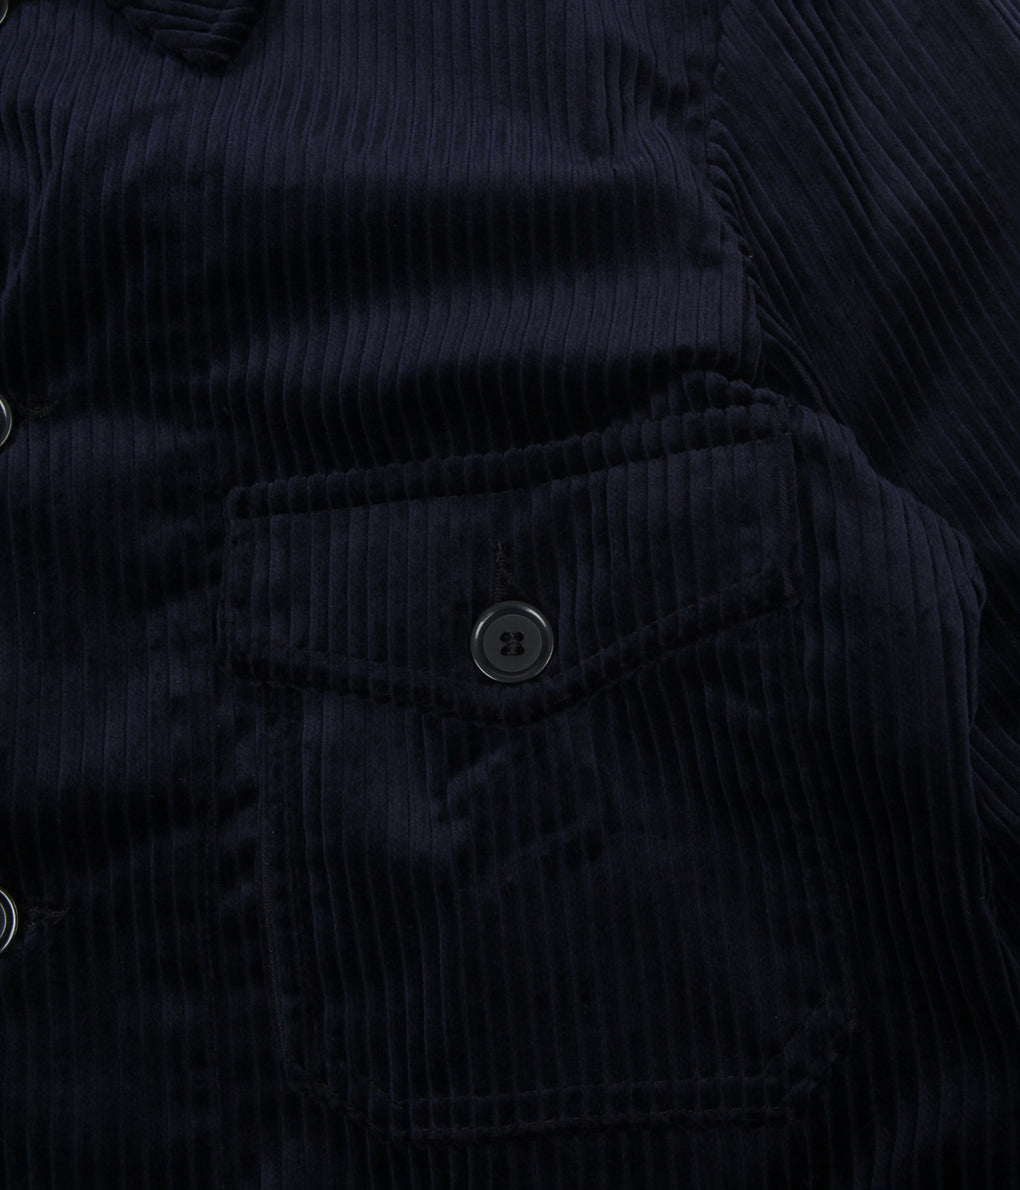 Vetra Wide Wale Corduroy Hunting Jacket - Navy